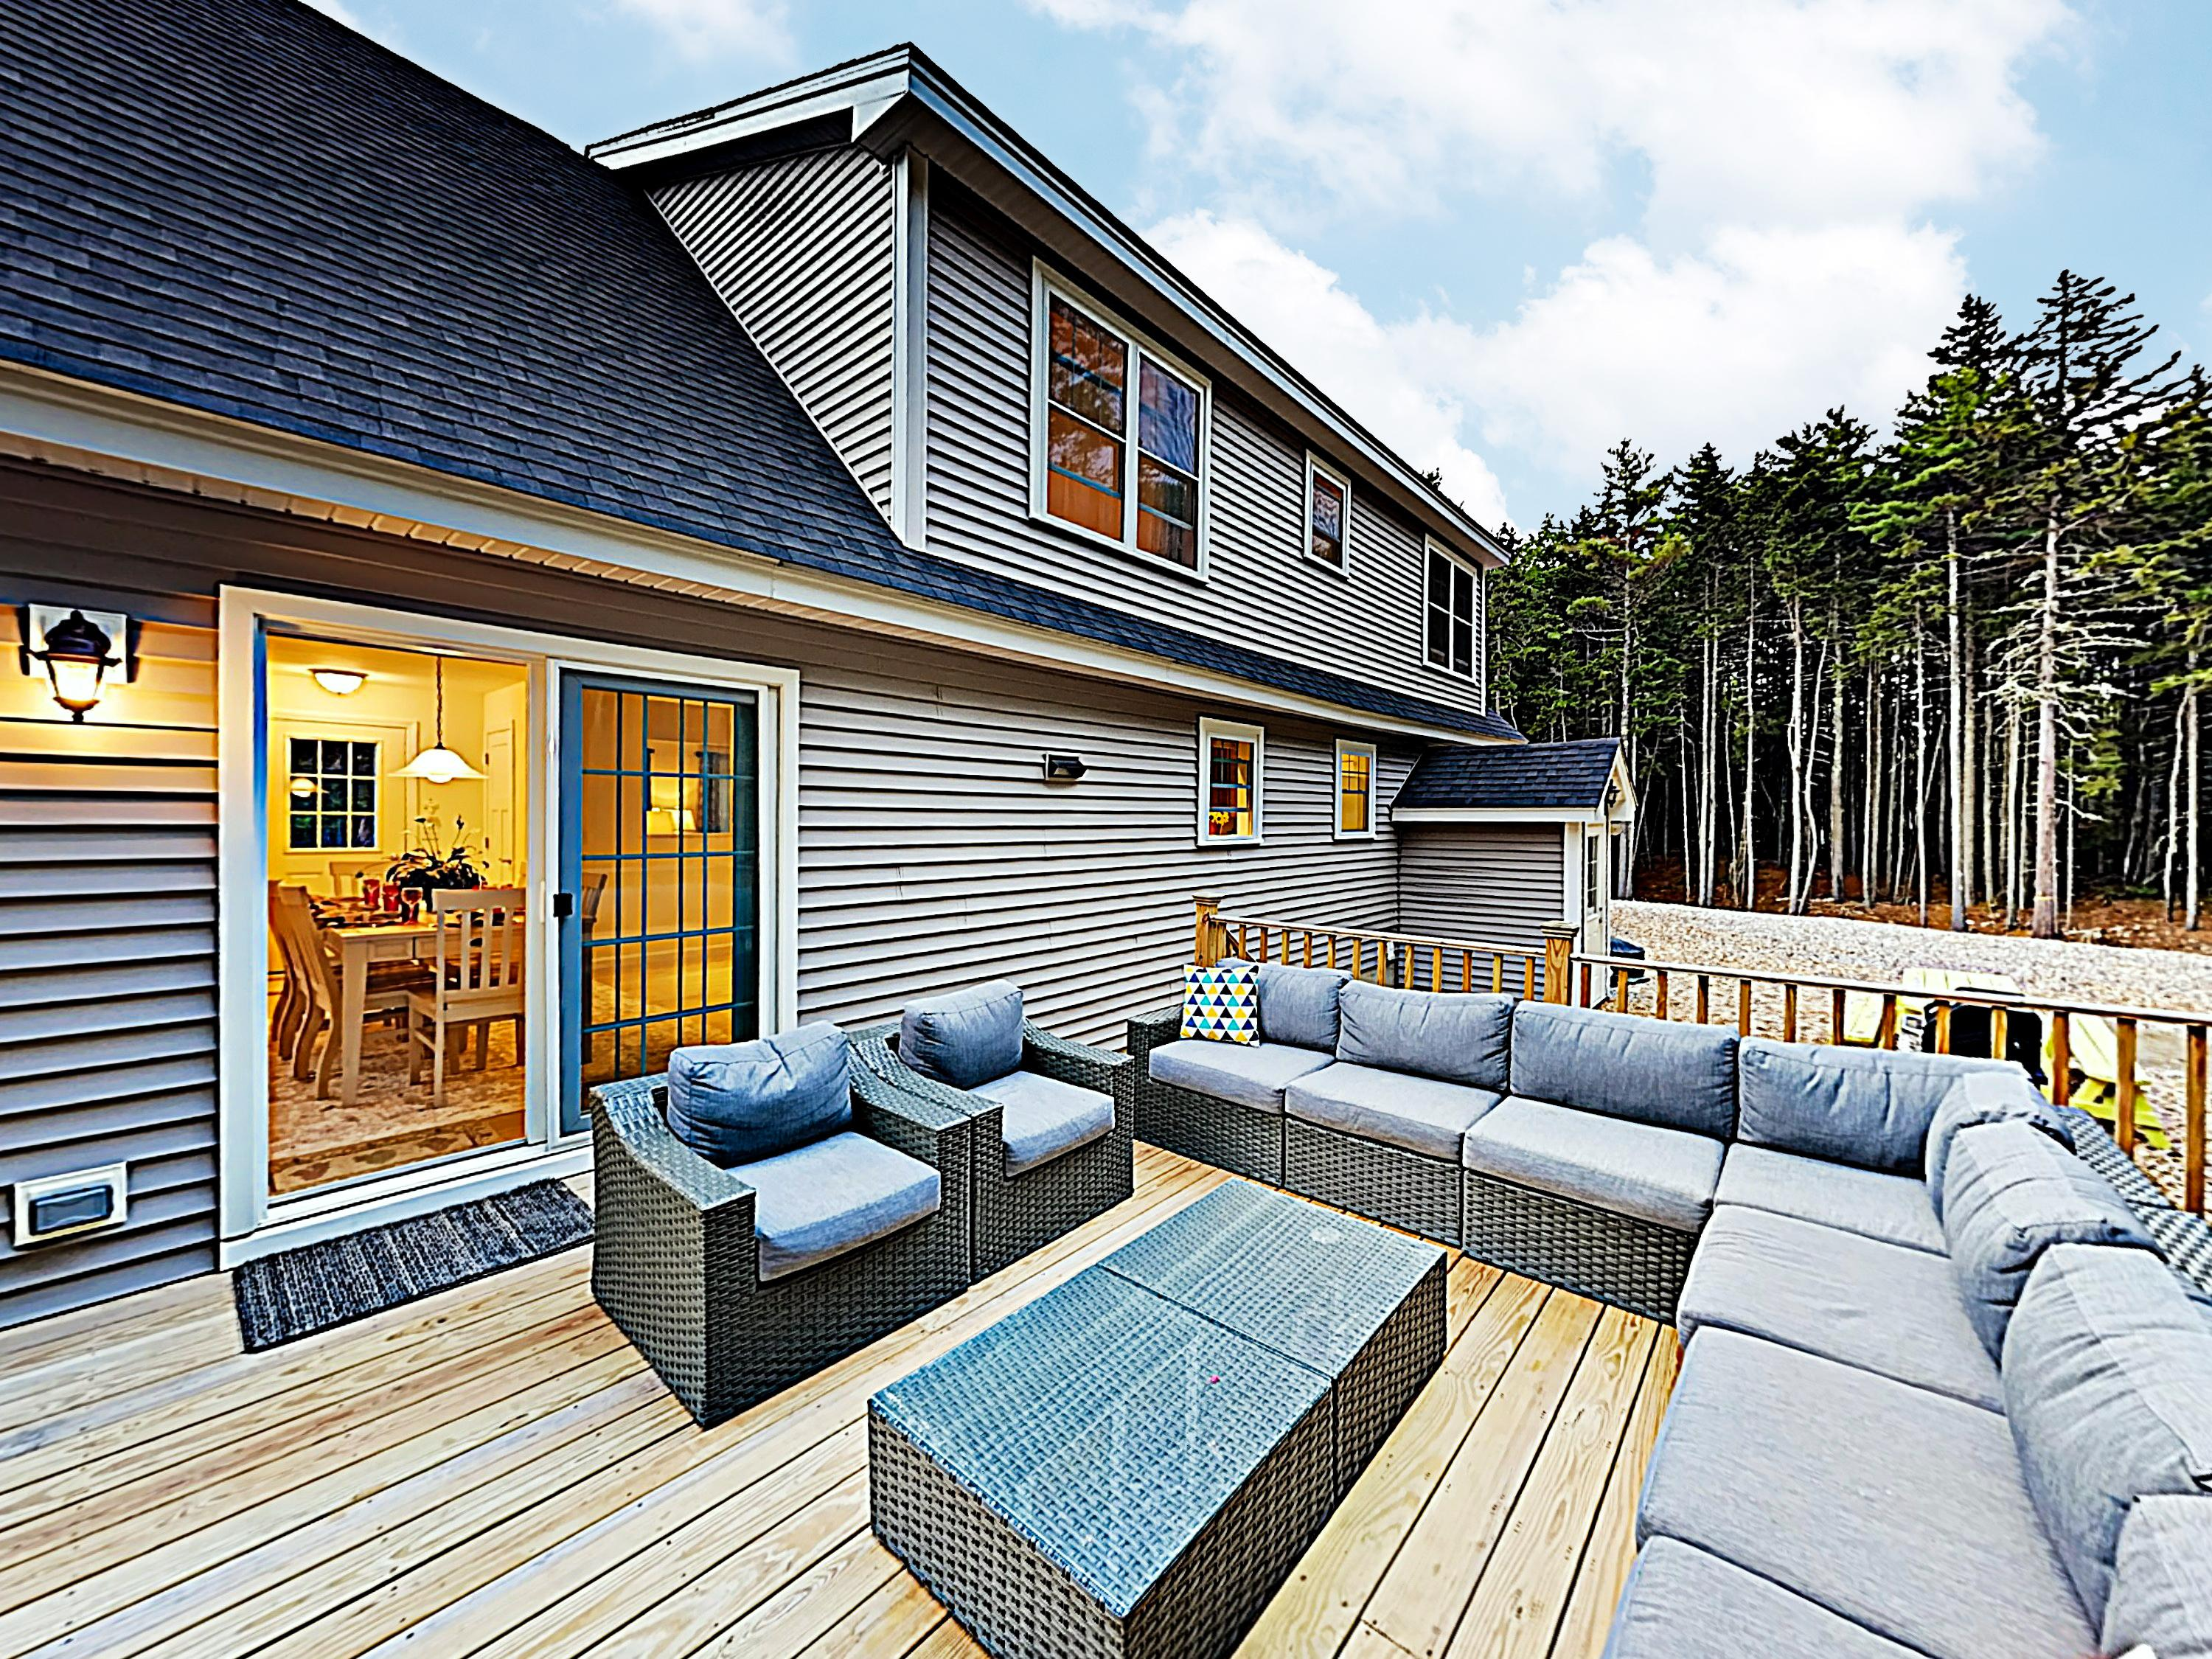 Lounge on the huge sectional and outdoor armchairs on your private deck.